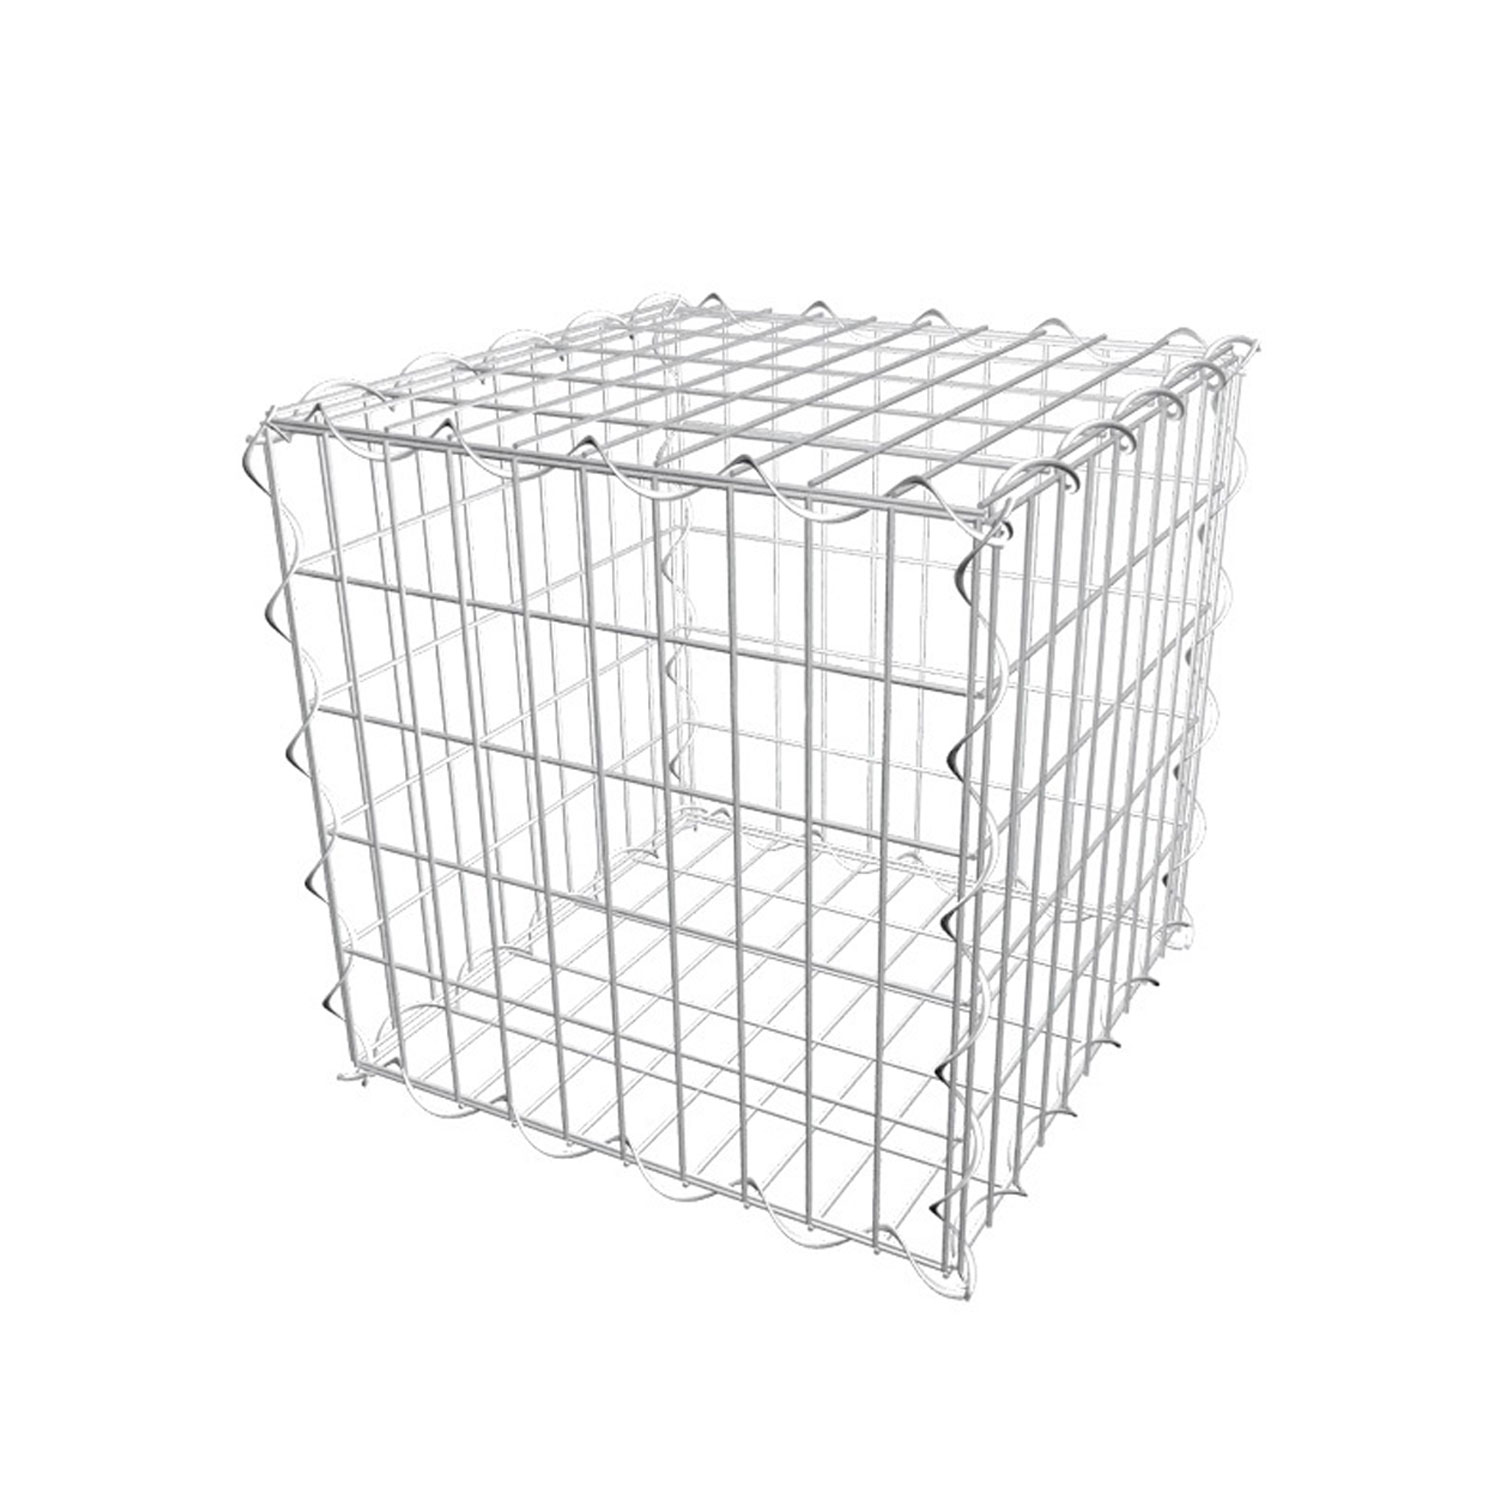 Kit gabion - Maille : 100 x 100 mm - Ø fil 4,5 mm